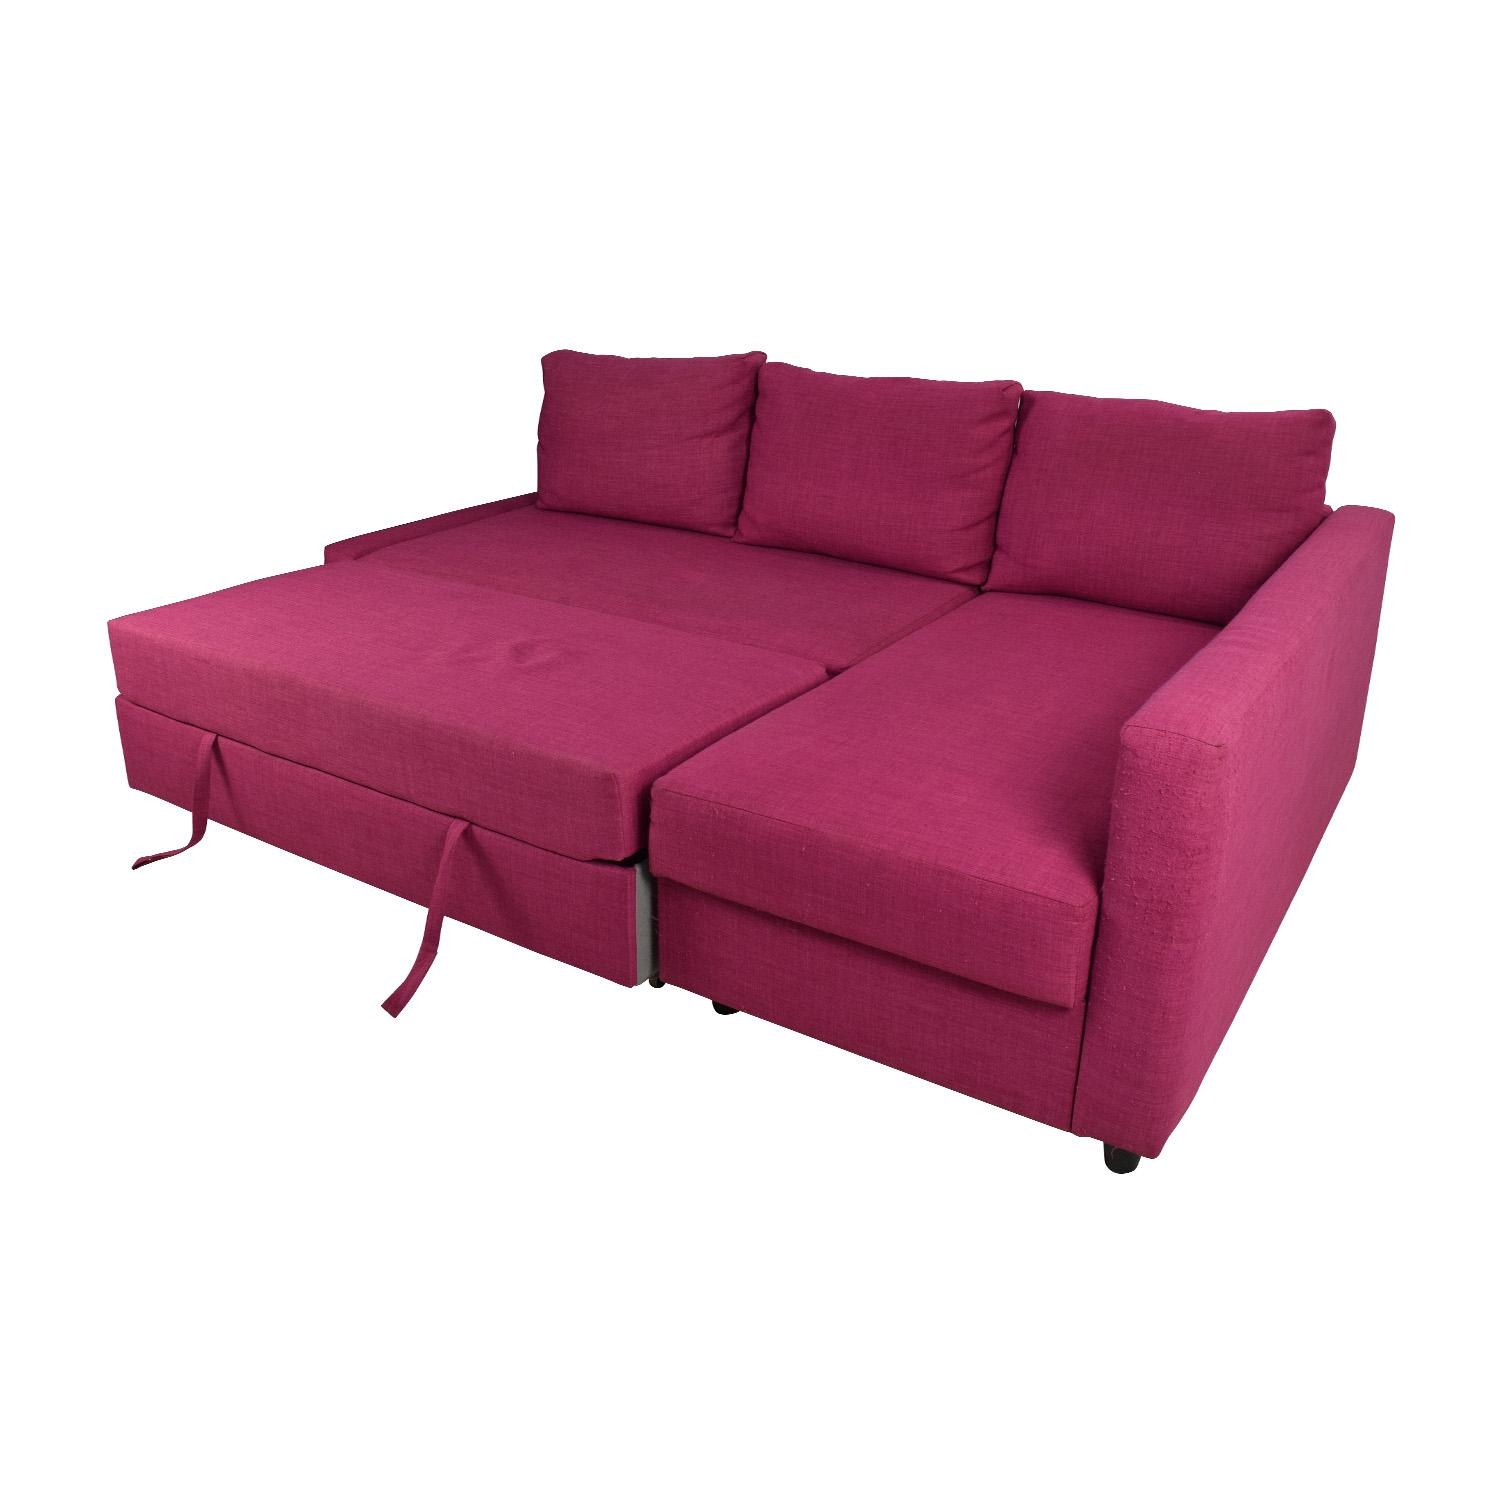 20 best ikea loveseat sleeper sofas sofa ideas Sofa sleeper loveseat